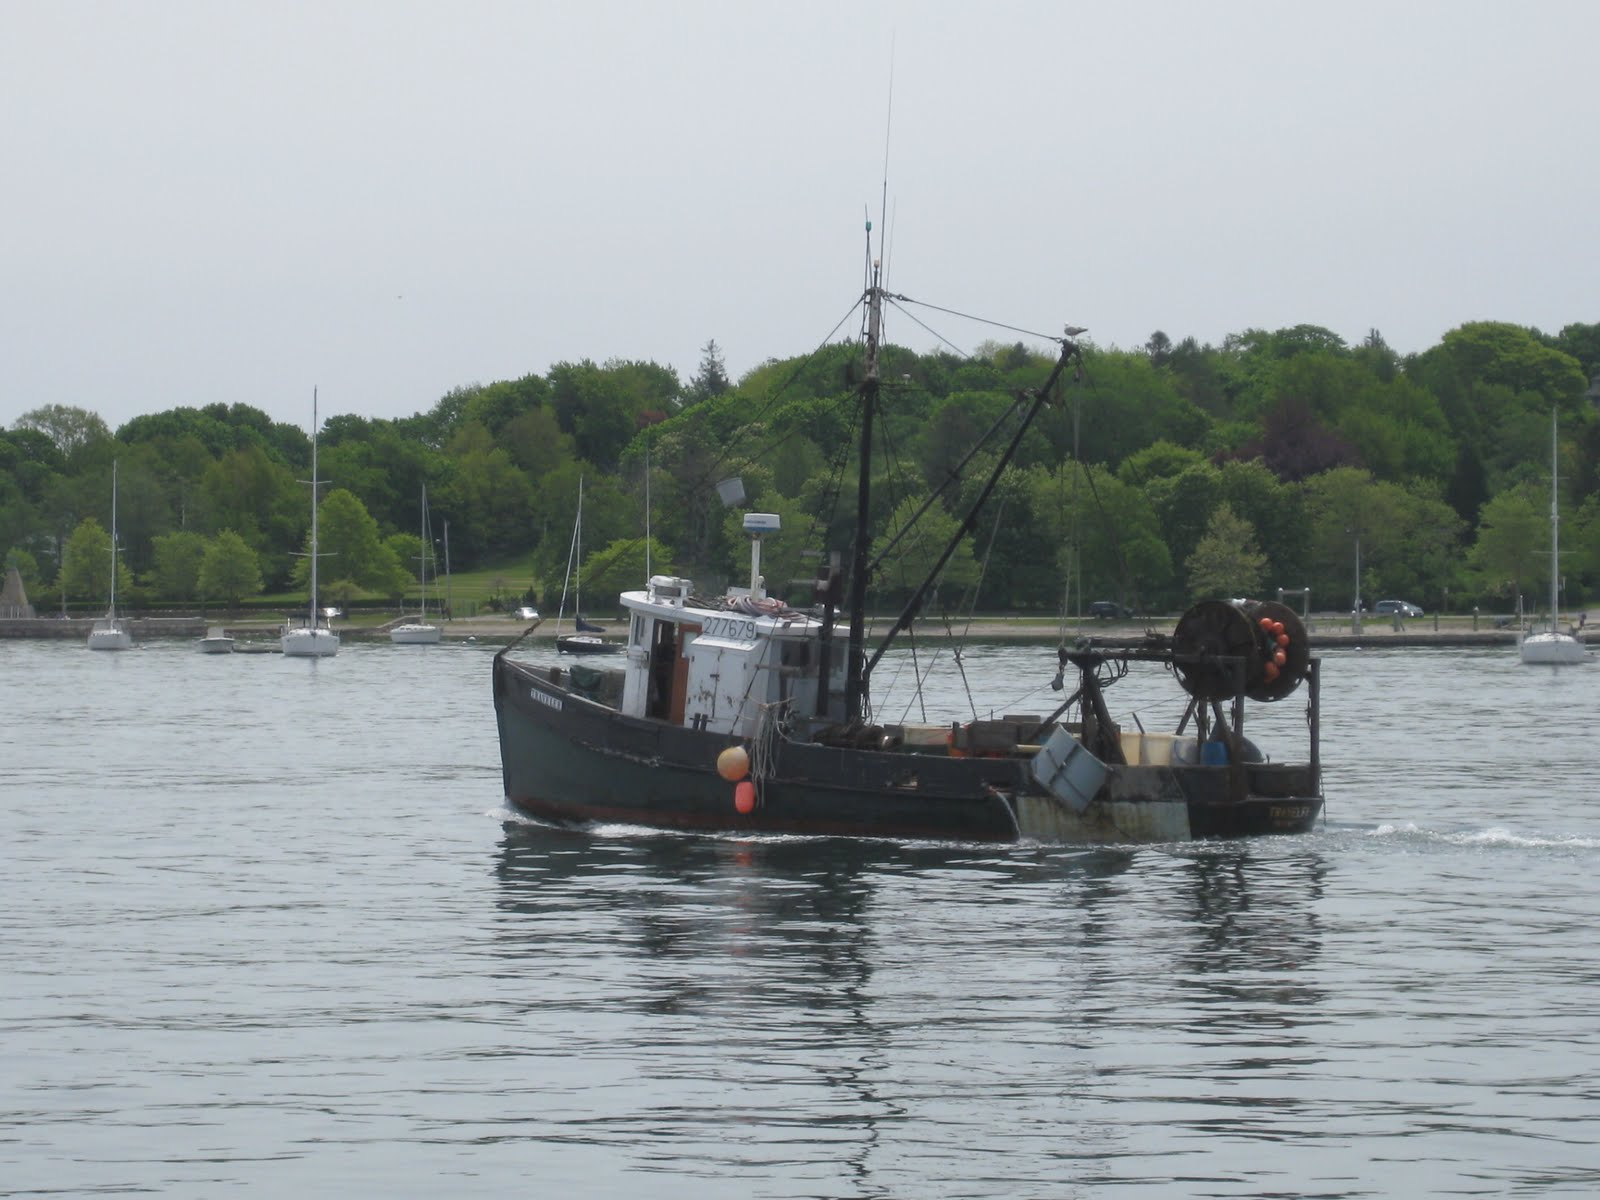 New and improving welcome to newport rhode island for Fishing newport ri